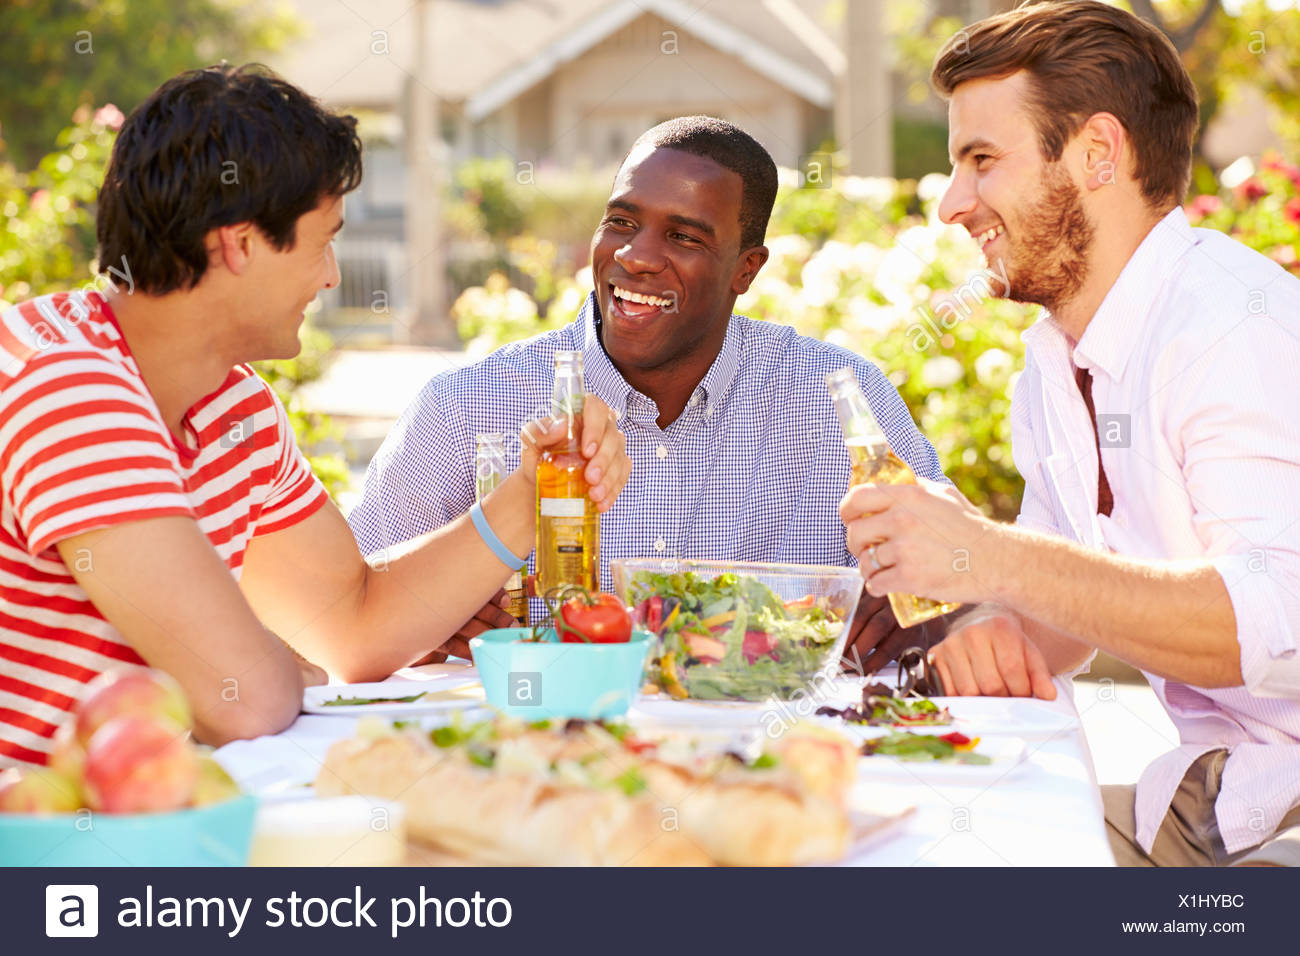 Trois Amis Enjoying Meal At Outdoor Party Photo Stock